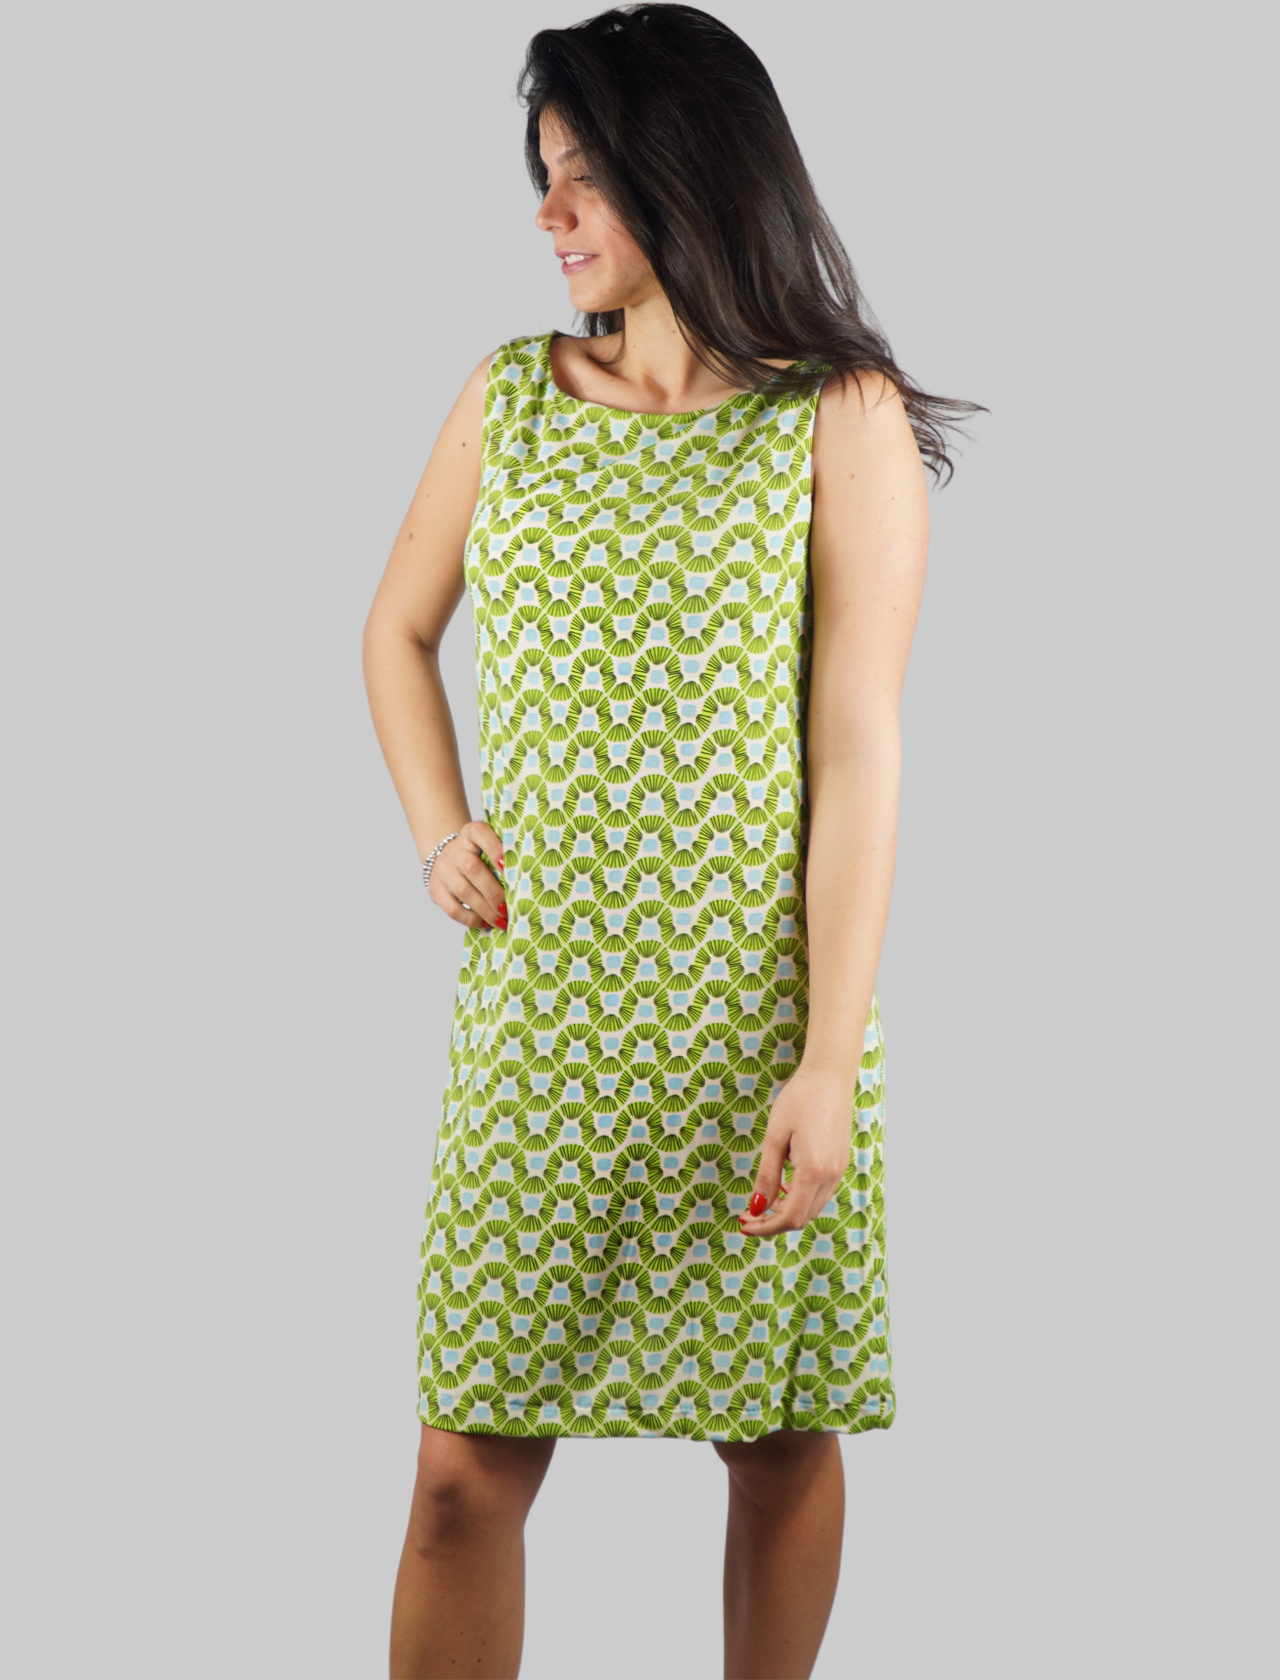 Women's Clothing Jersey Happy Frame Dress with Armholes in Green Fantasy Maliparmi |  | JF633370493C6015